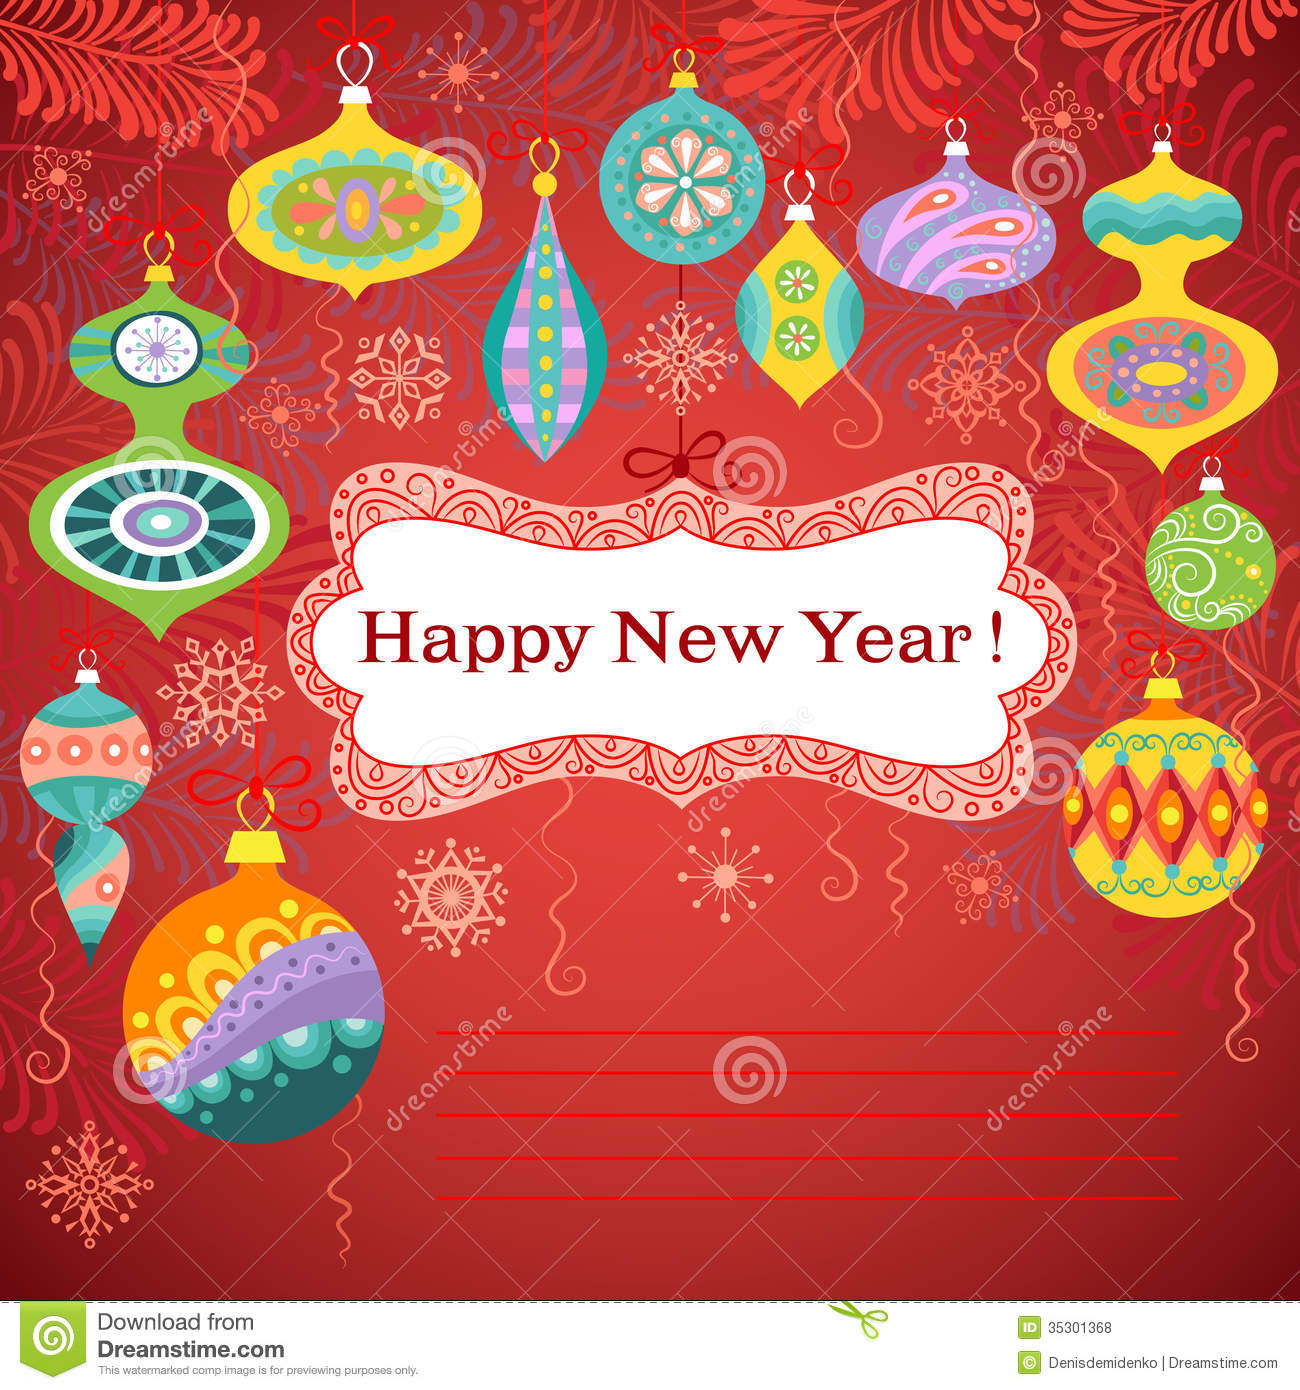 Card Design Ideas : Snowflakes Place Free Happy New Year Cards Text - Free Printable Happy New Year Cards